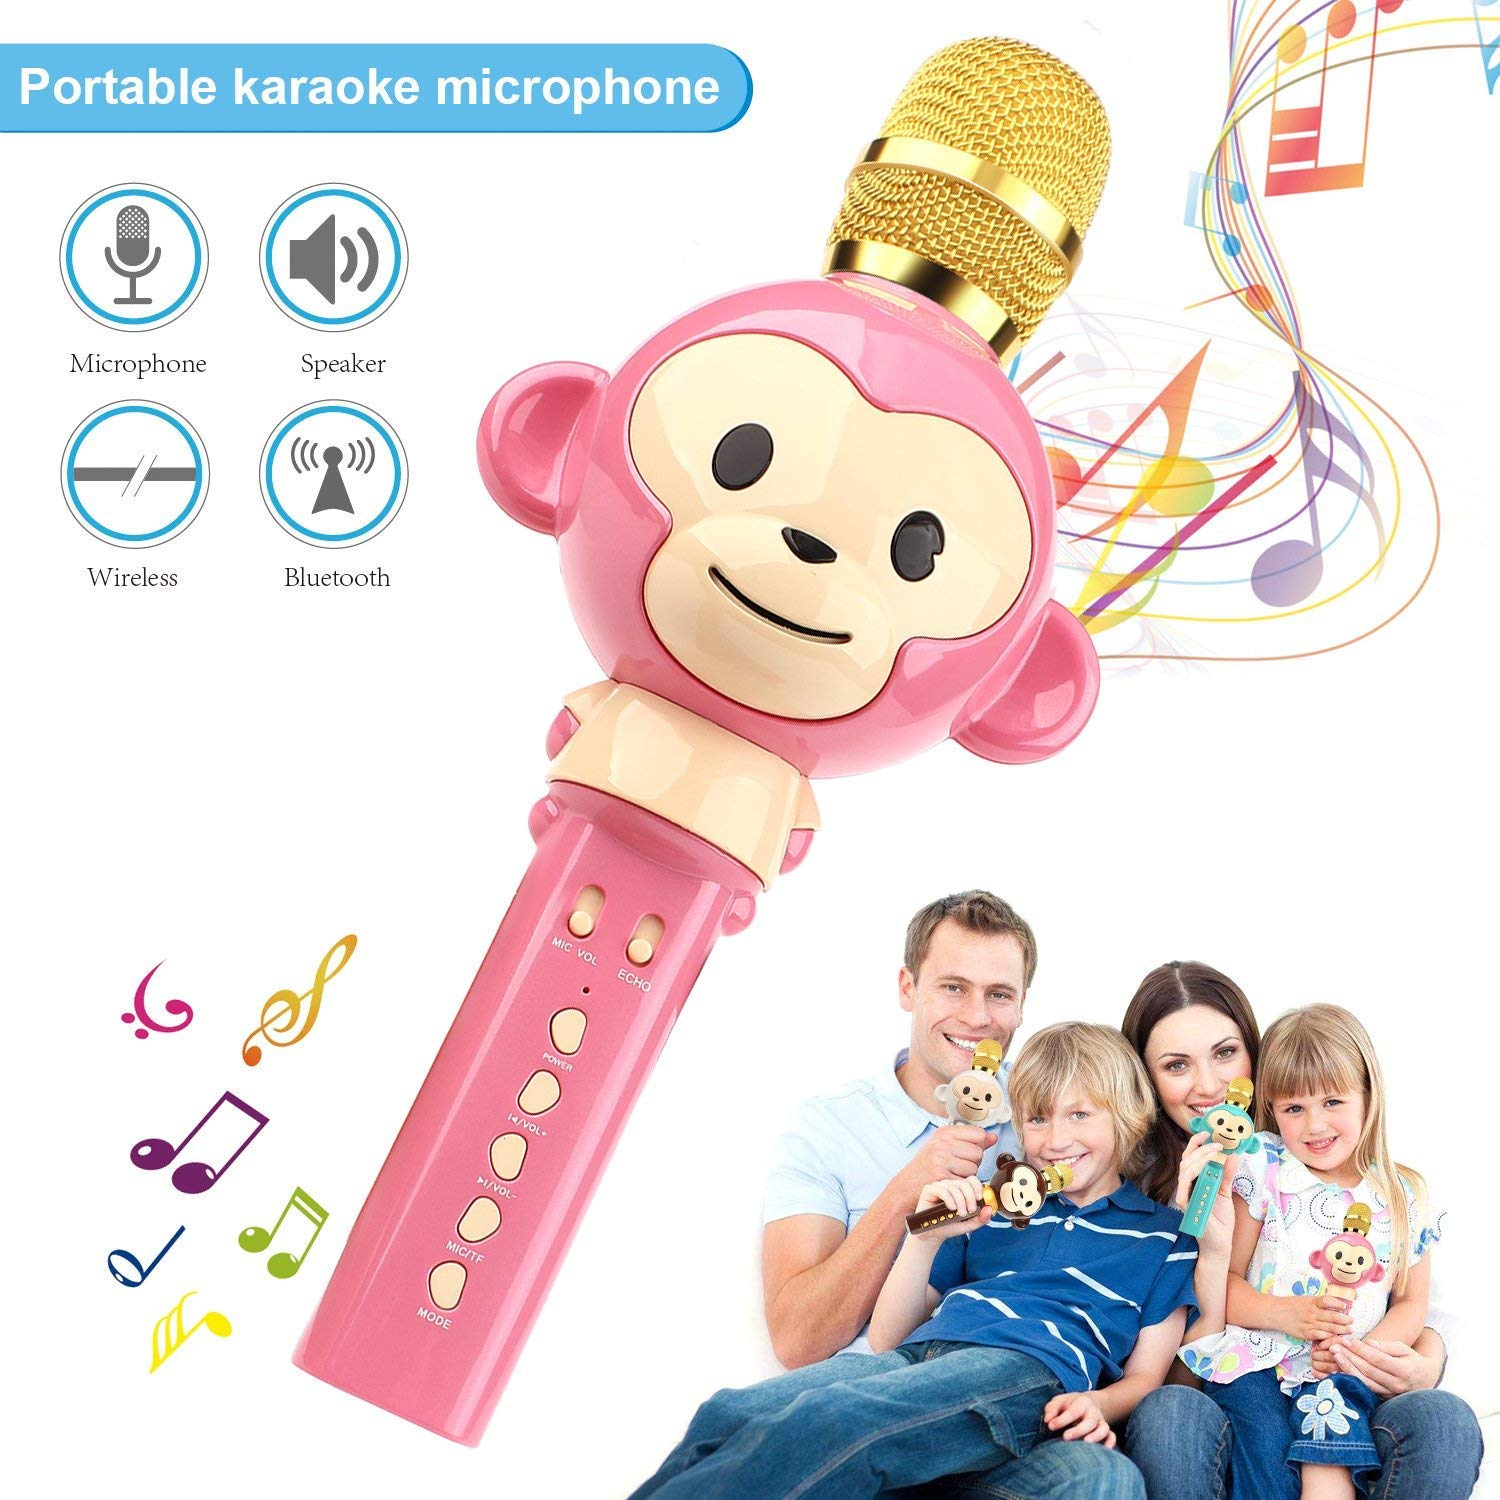 LingHui Kids Microphone Wireless Bluetooth Karaoke Microphone , 3-in-1 Portable Handheld Karaoke Mic Home Party Birthday Speaker Machine for iPhone/Android/iPad/Sony,PC and All Smartphone (Pink) by LingHui (Image #1)